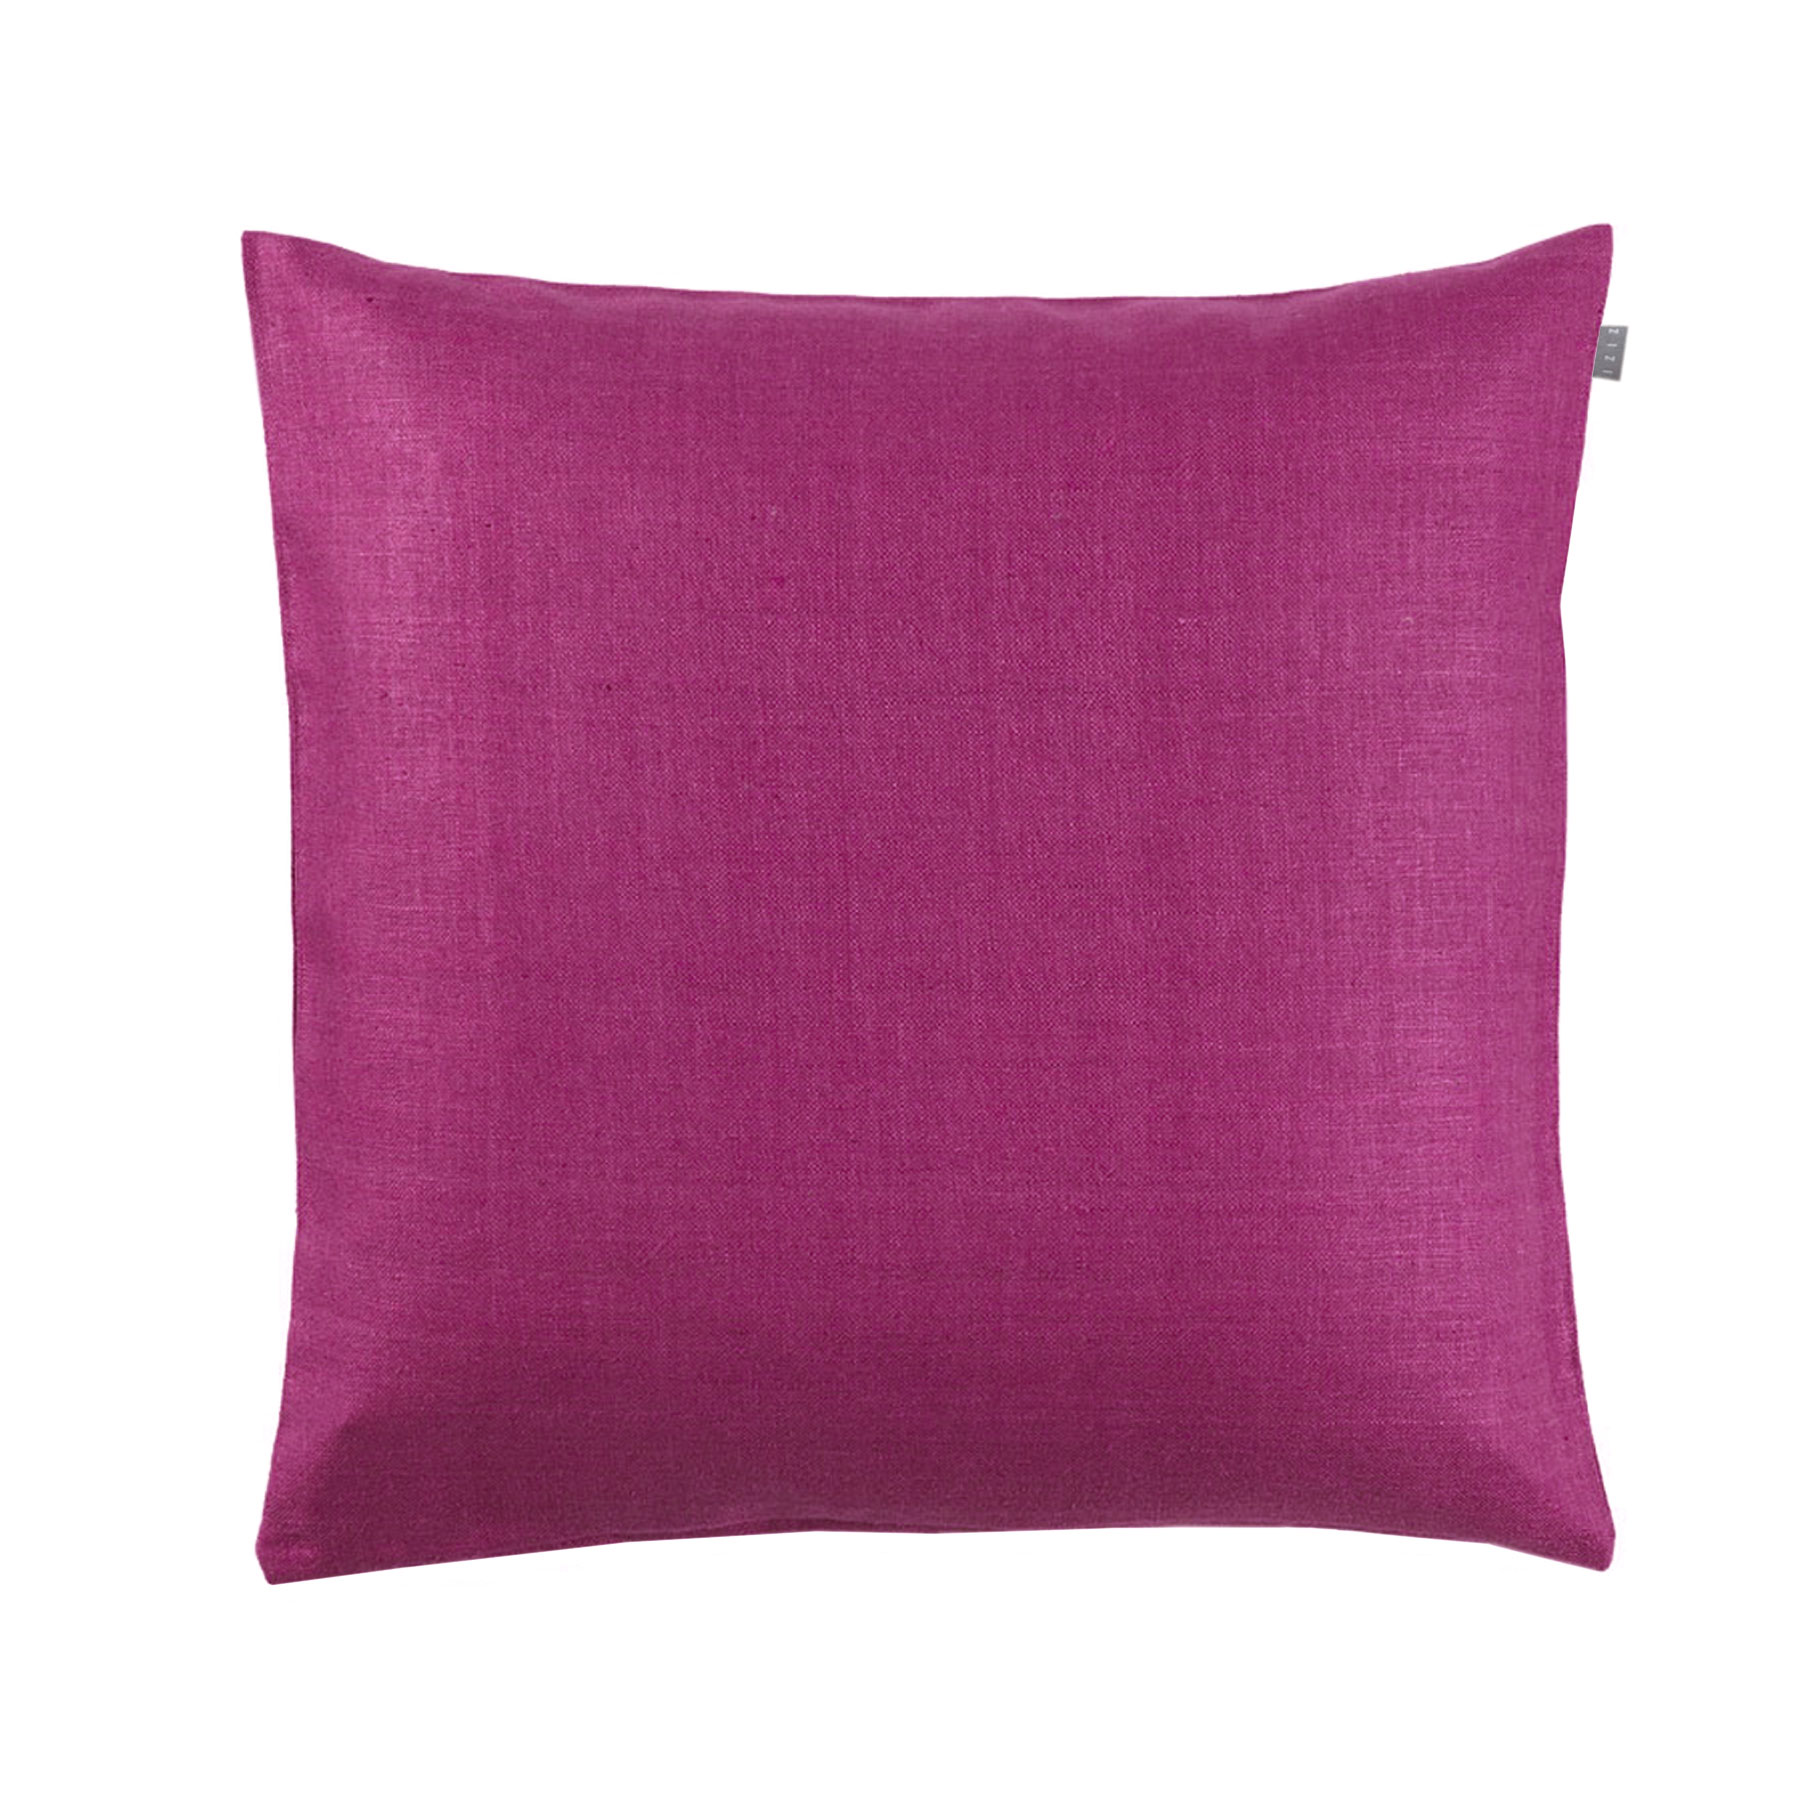 CUSHION COVER PLAIN <br />fuchsia